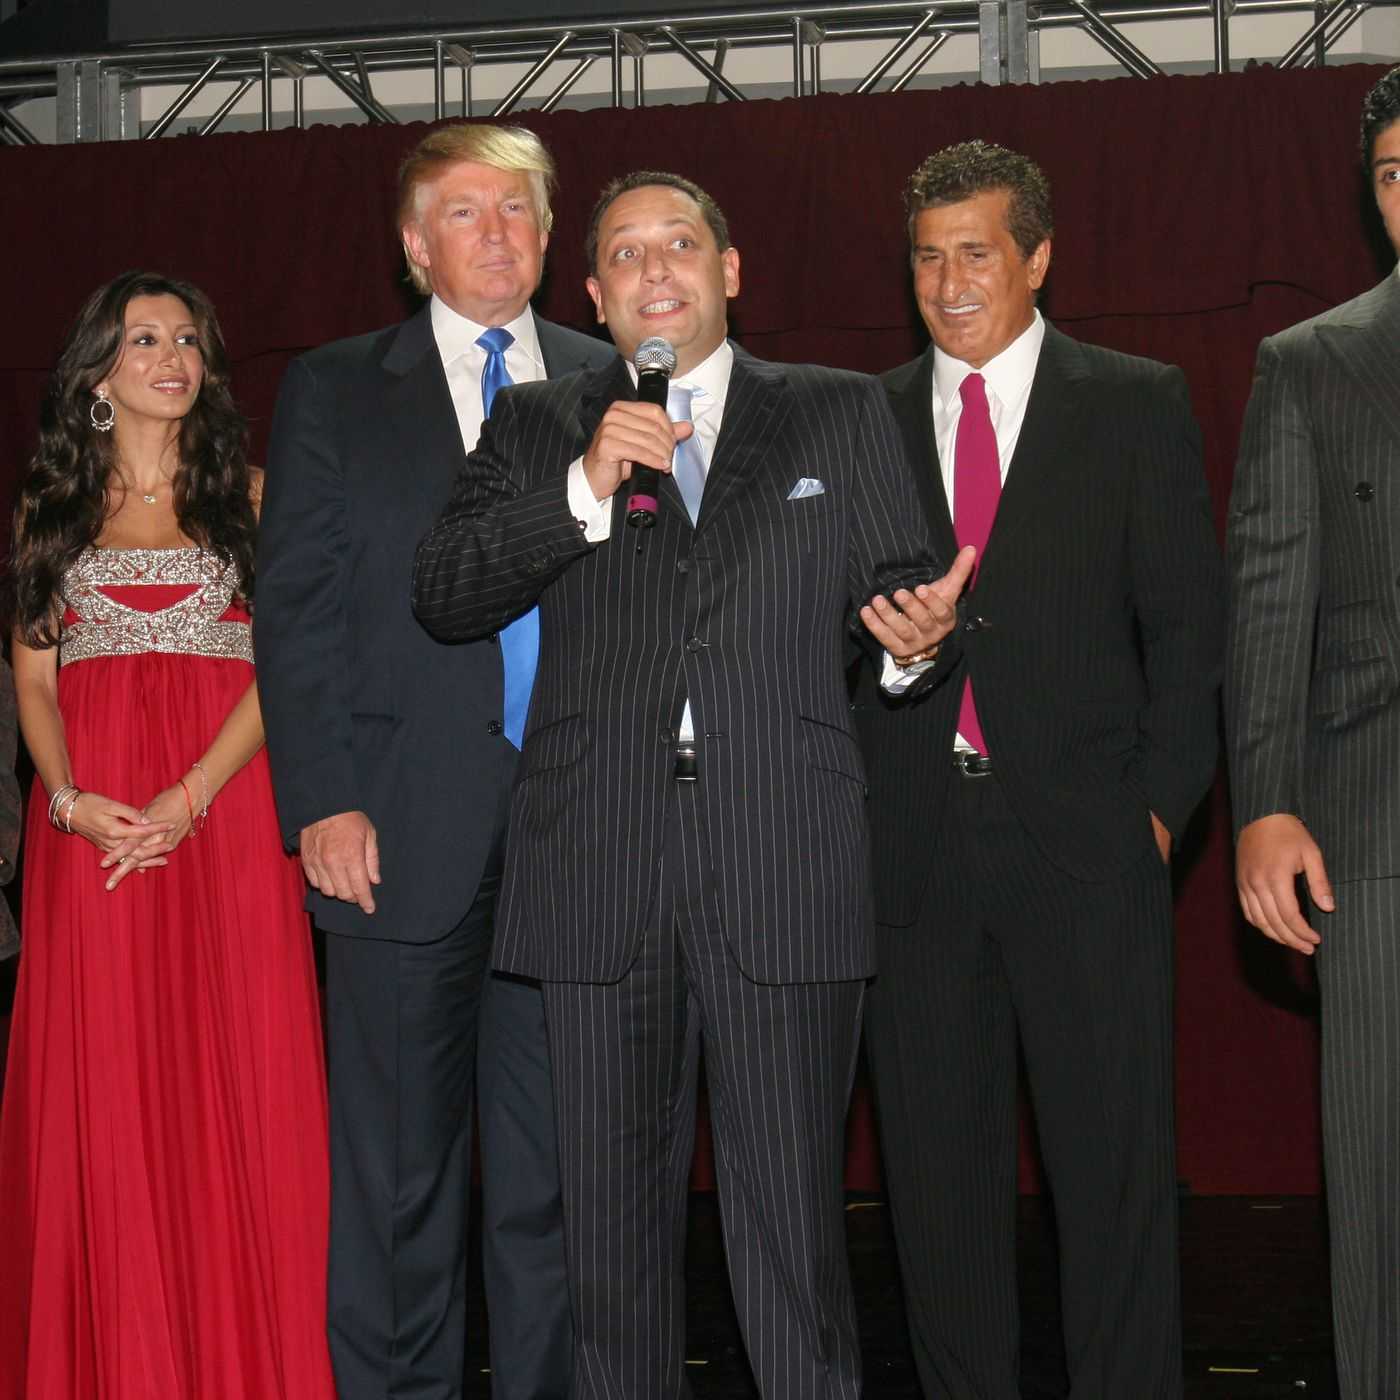 Felix Sater, Trump Tower Moscow lead, explained - Vox